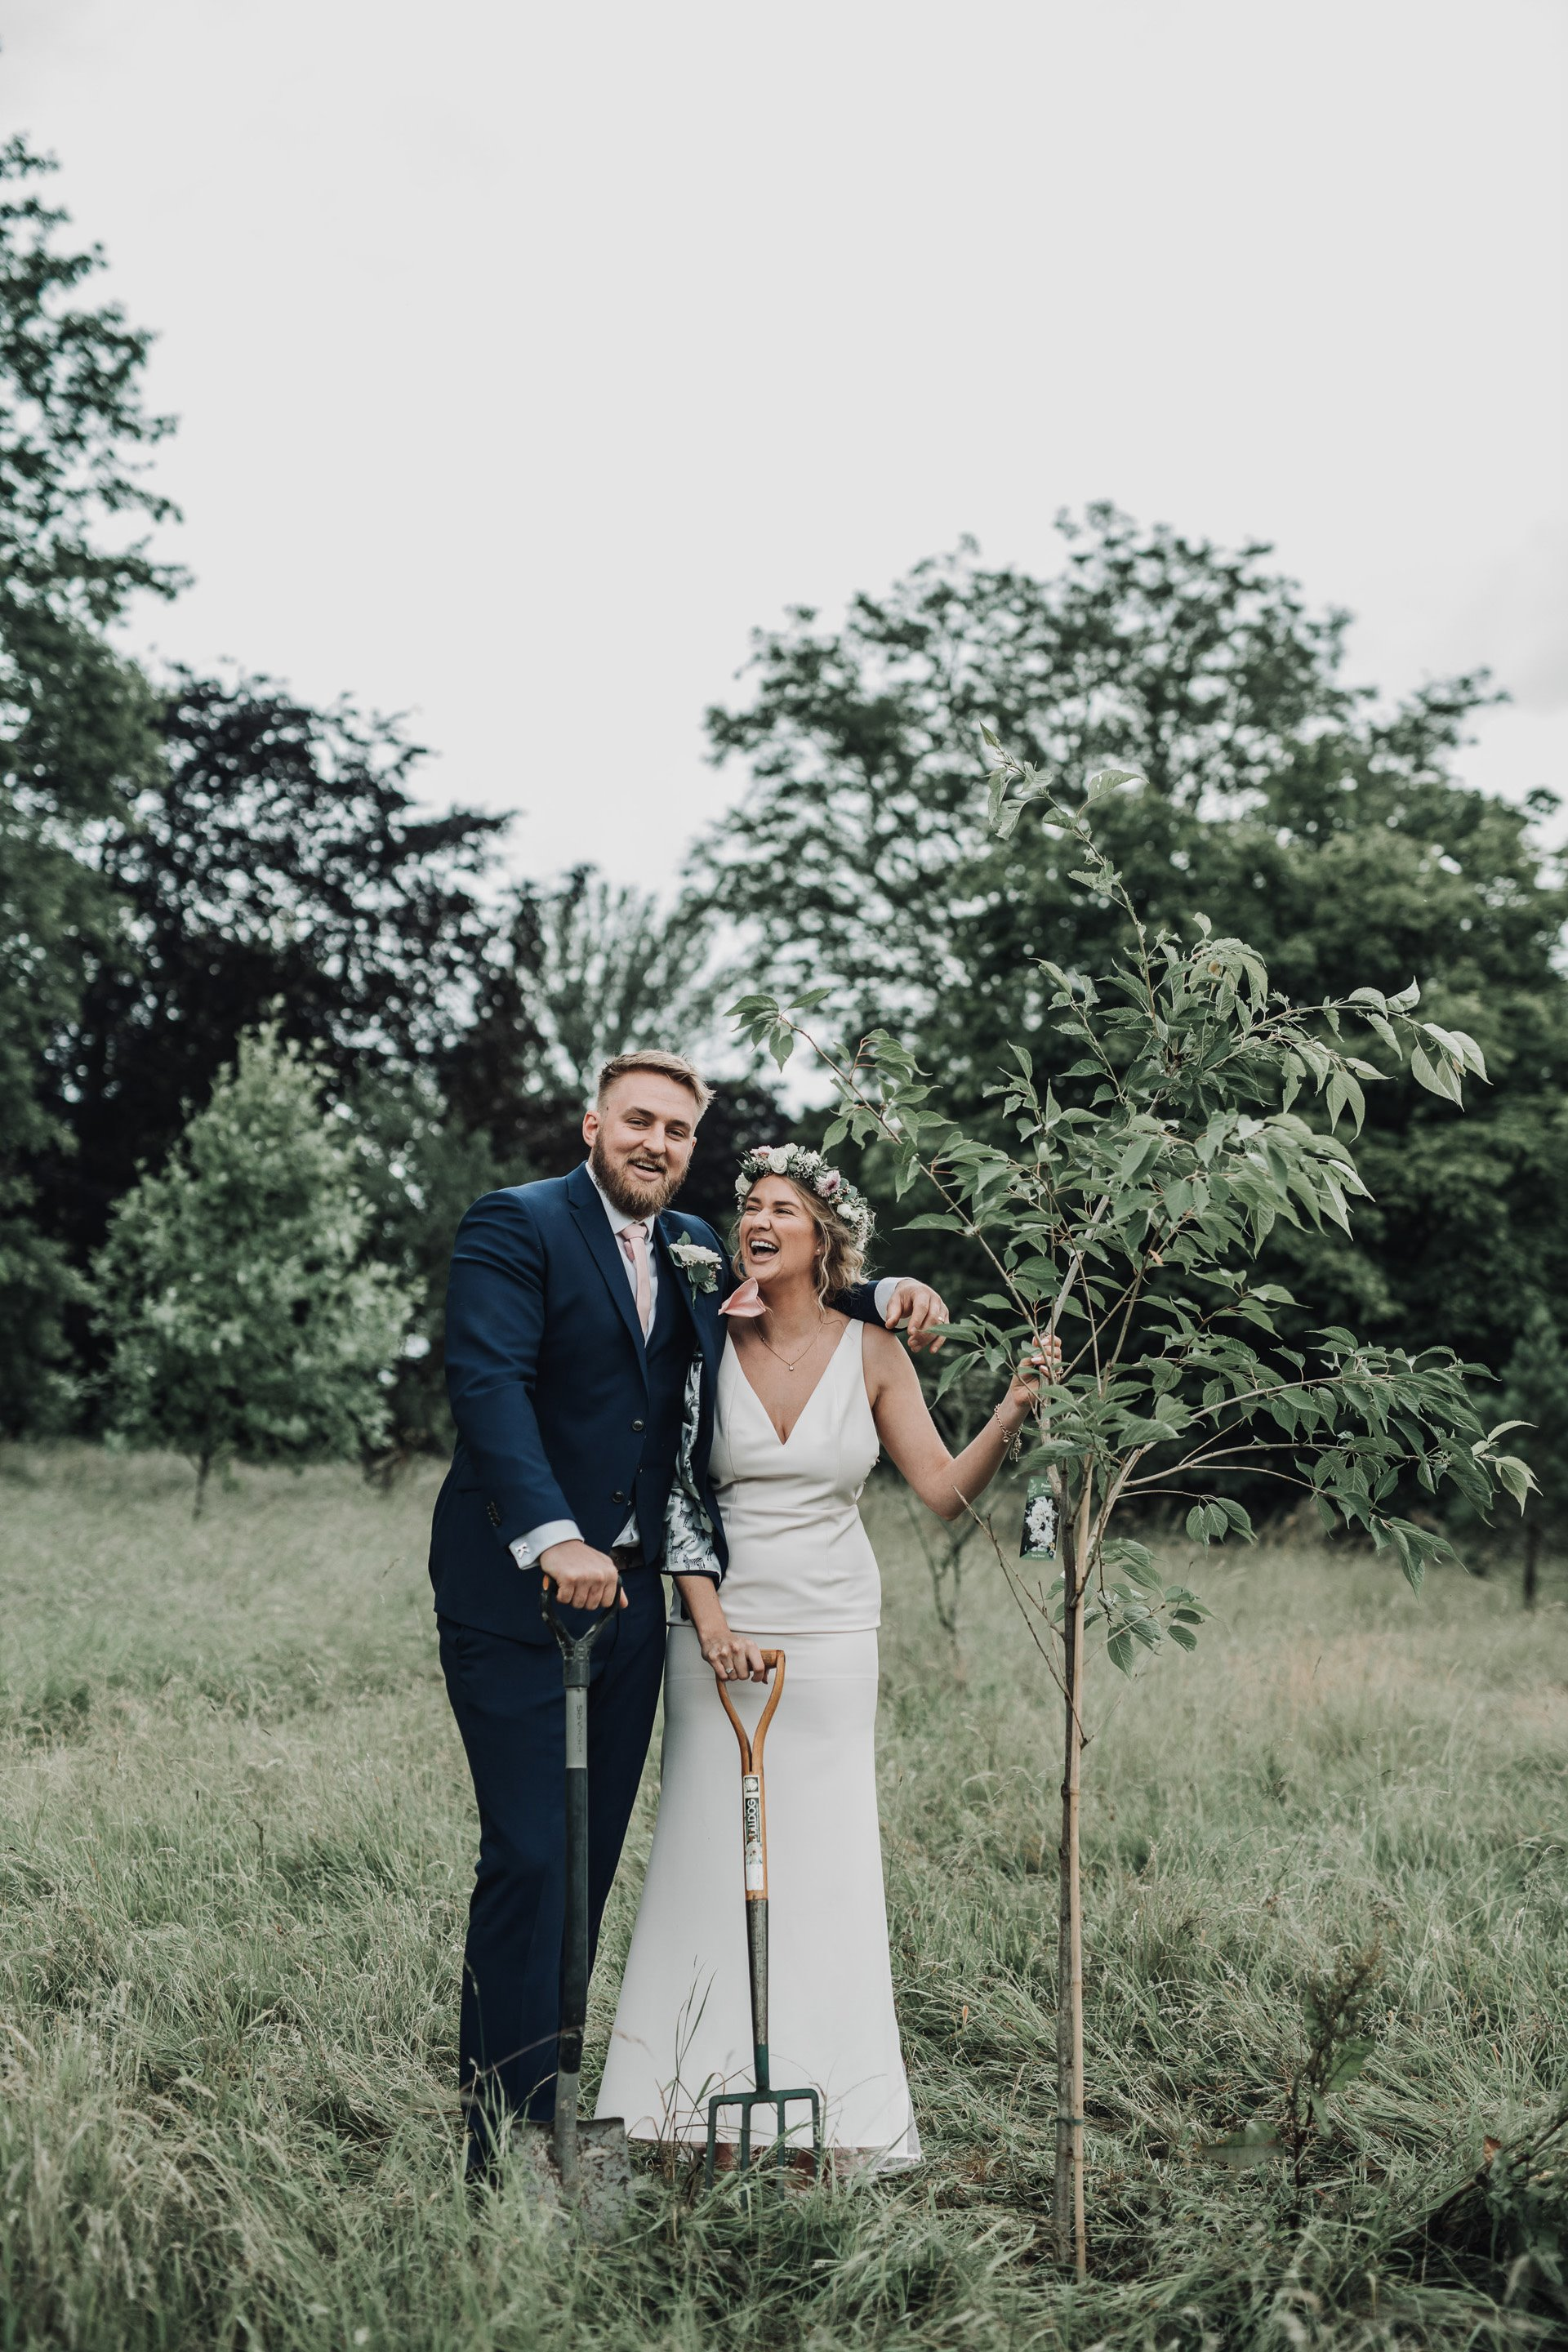 Bride and groom stand with the tree they just planted as part of their micro wedding ceremony during corona pandemic at sustainable wedding venue elmore court in cotswolds